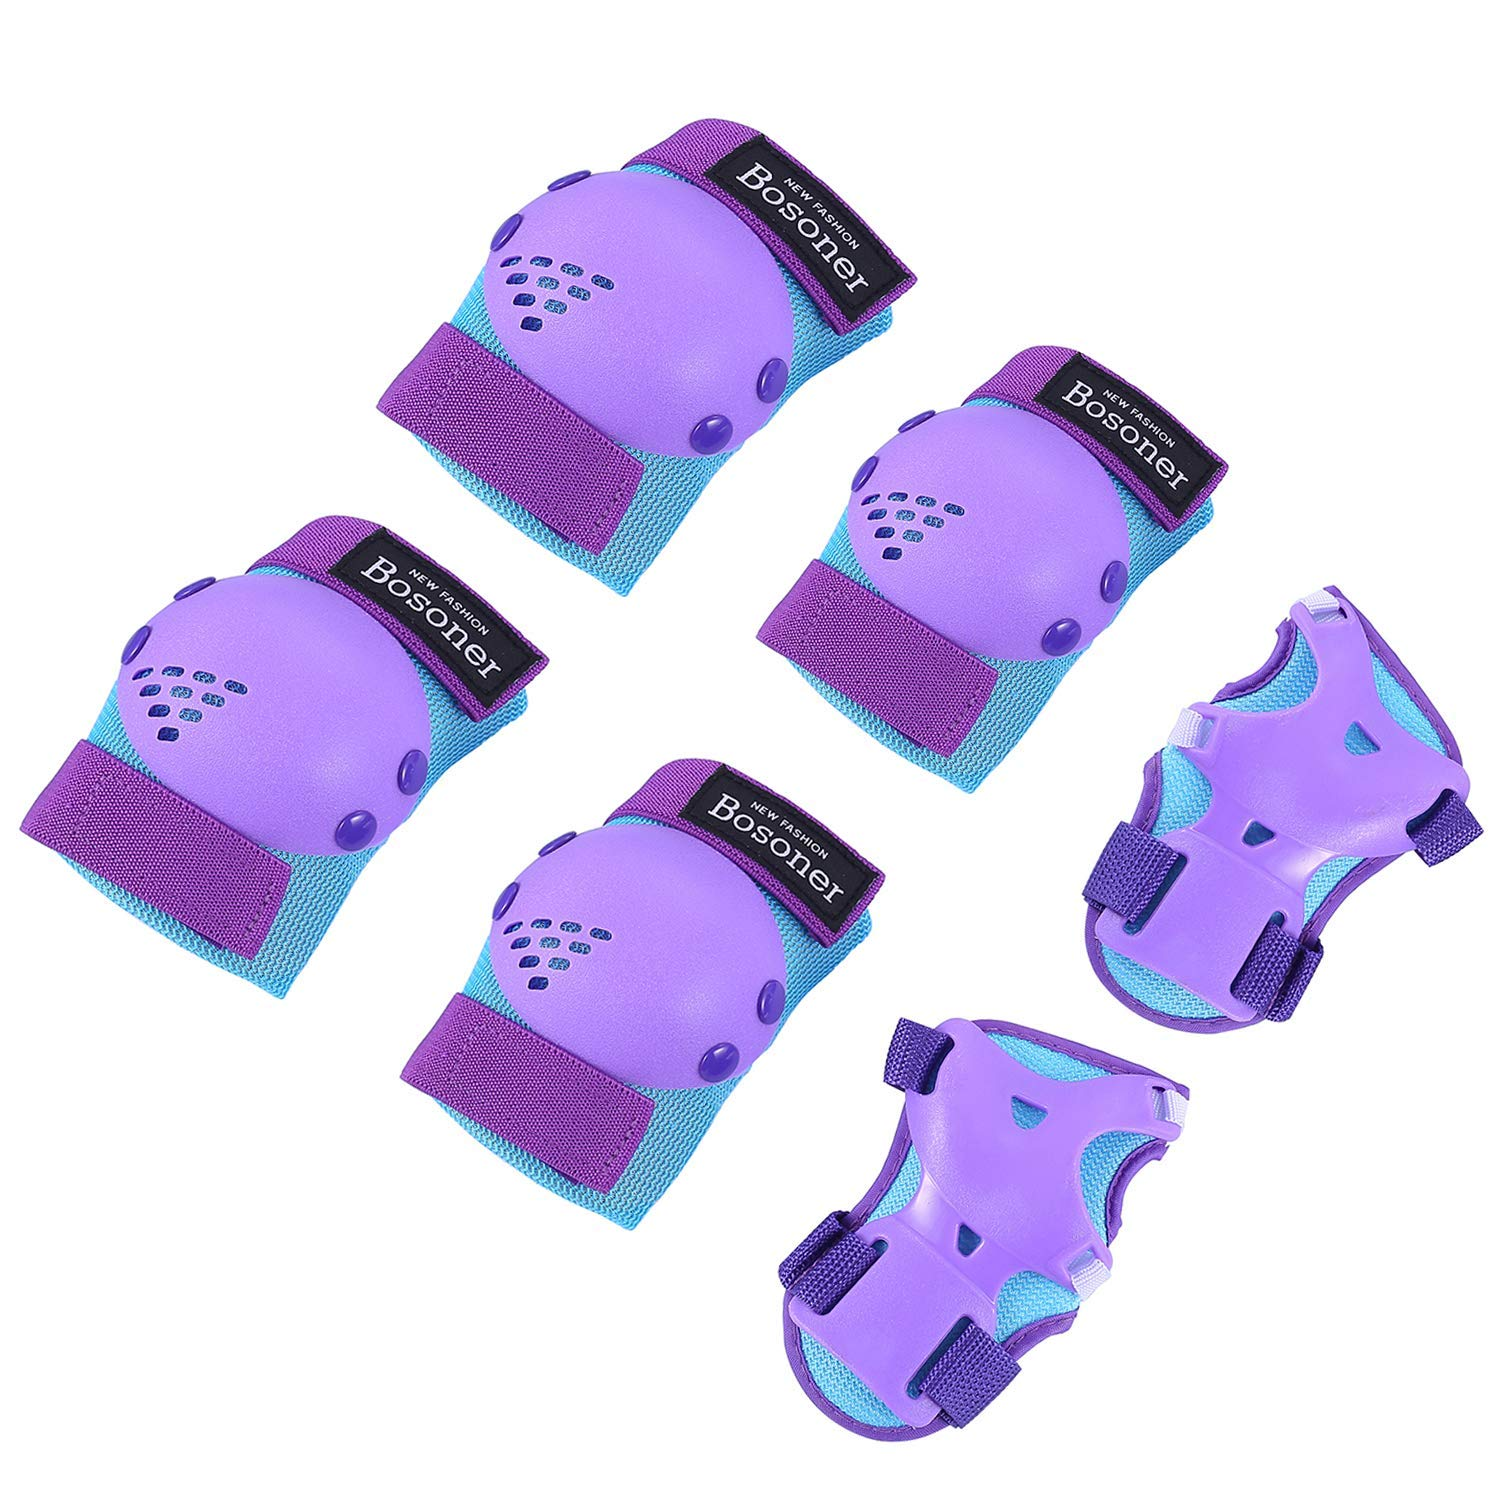 BOSONER Kids Youth Knee Pad Elbow Pads for Rollerblade Roller Skates Cycling BMX Bike Skateboard Inline Rollerblading, Skating Skatings Scooter Riding Sports